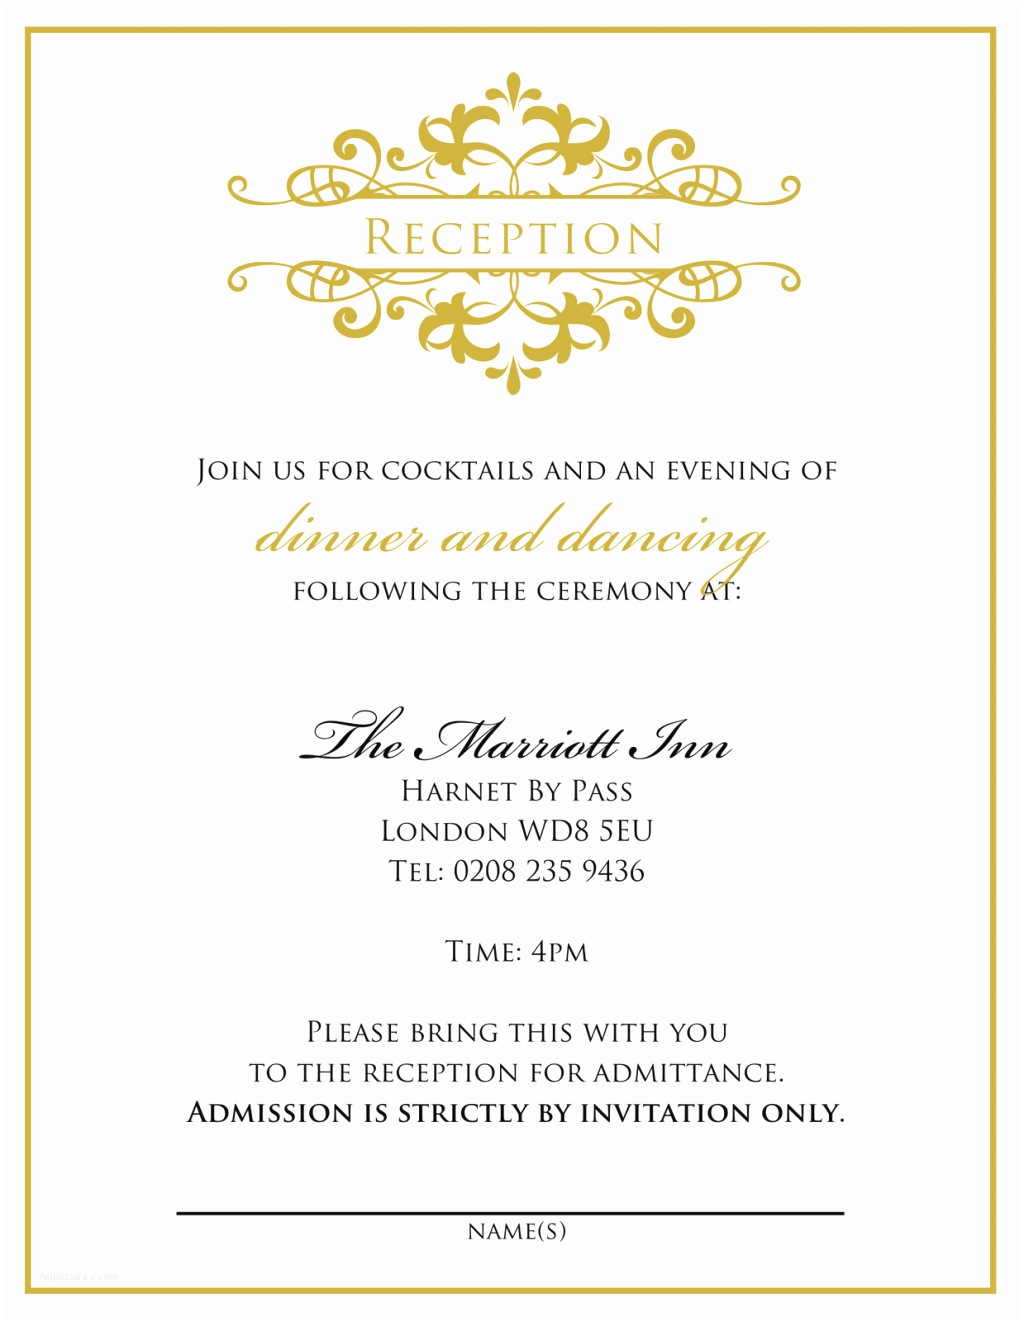 Proper Wedding Invitation Wording Wedding Invitation Wording From Bride and Groom